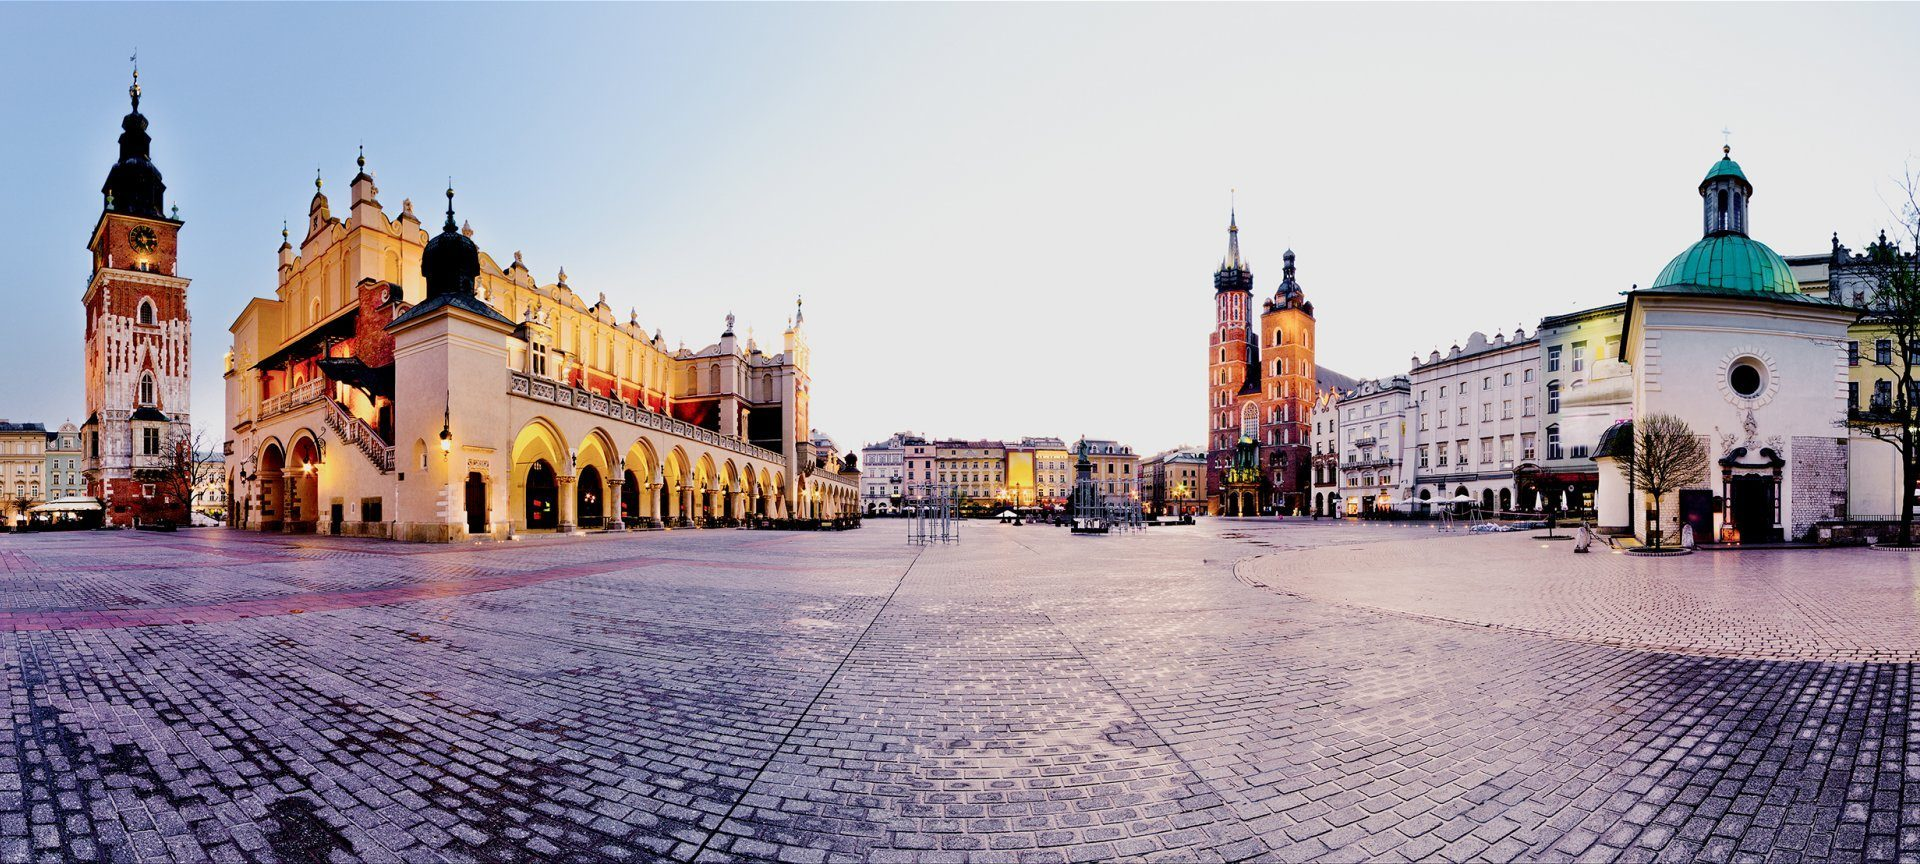 IN THE HEART OF KRAKOW